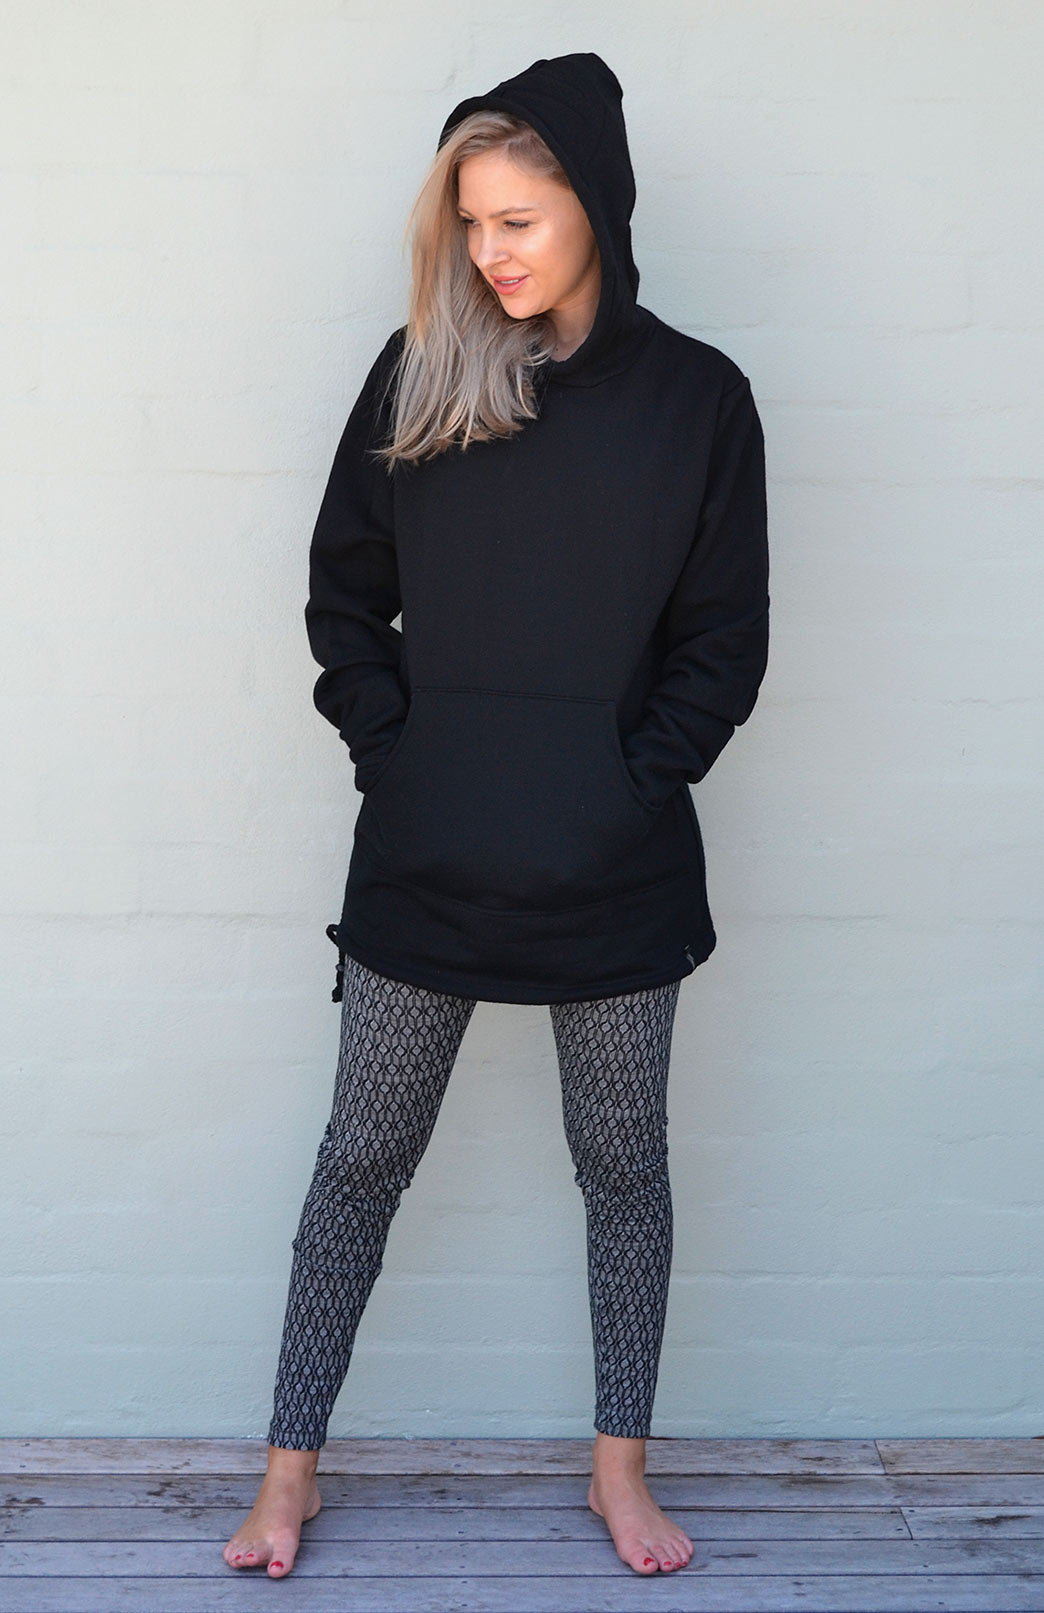 Wool Fleece Hoody (~350g) - Women's Black Wool Fleece Hoody Jacket with ties and kangaroo pocket - Smitten Merino Tasmania Australia